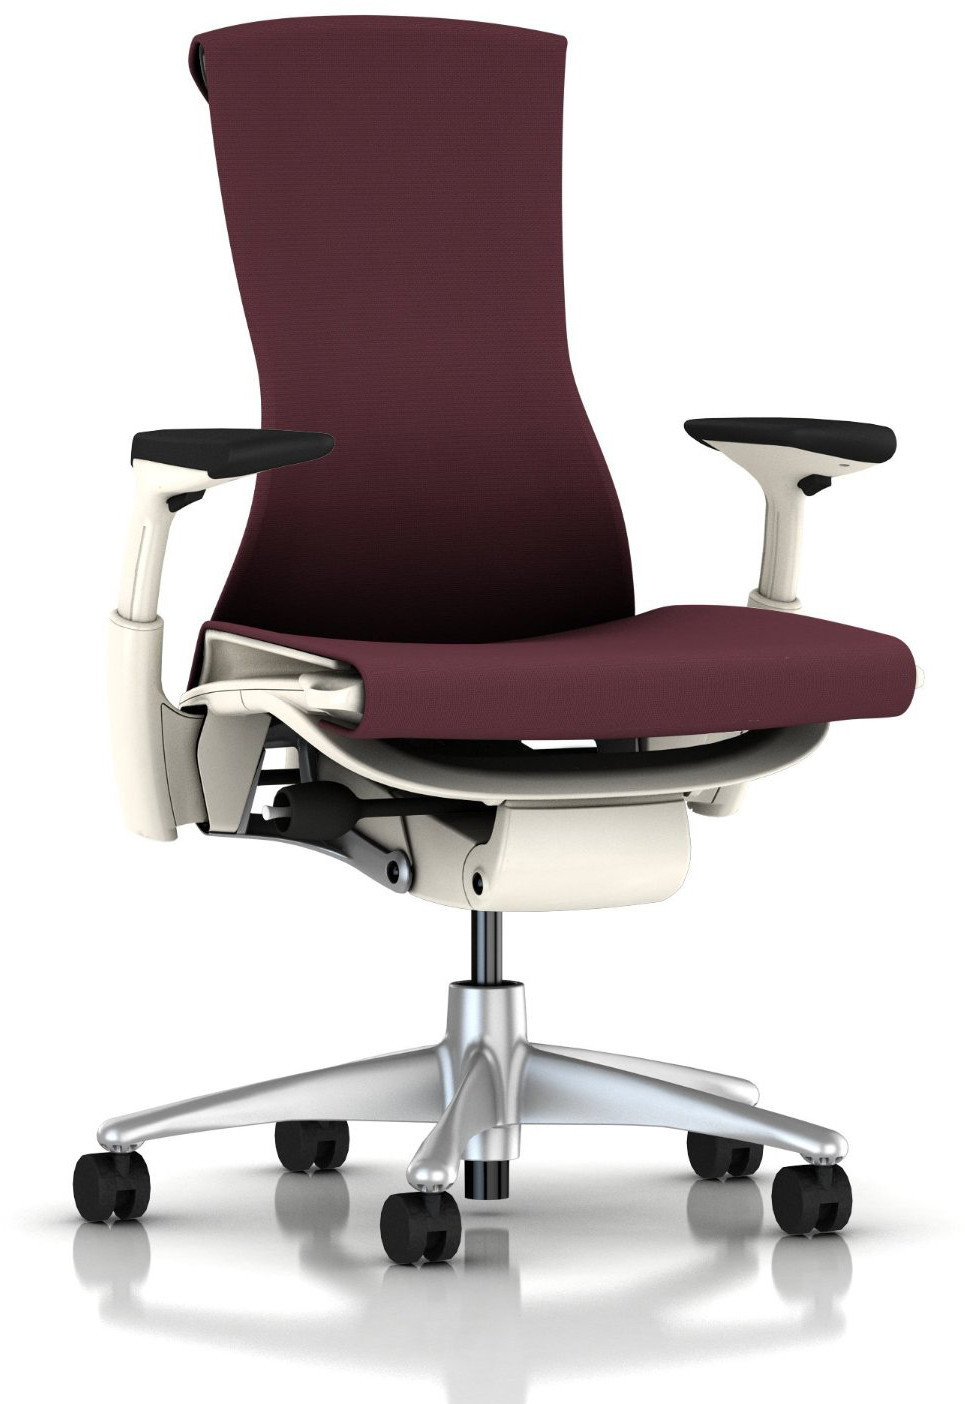 Best ideas about Best Home Office Chair . Save or Pin Home fice Chair richfielduniversity Now.